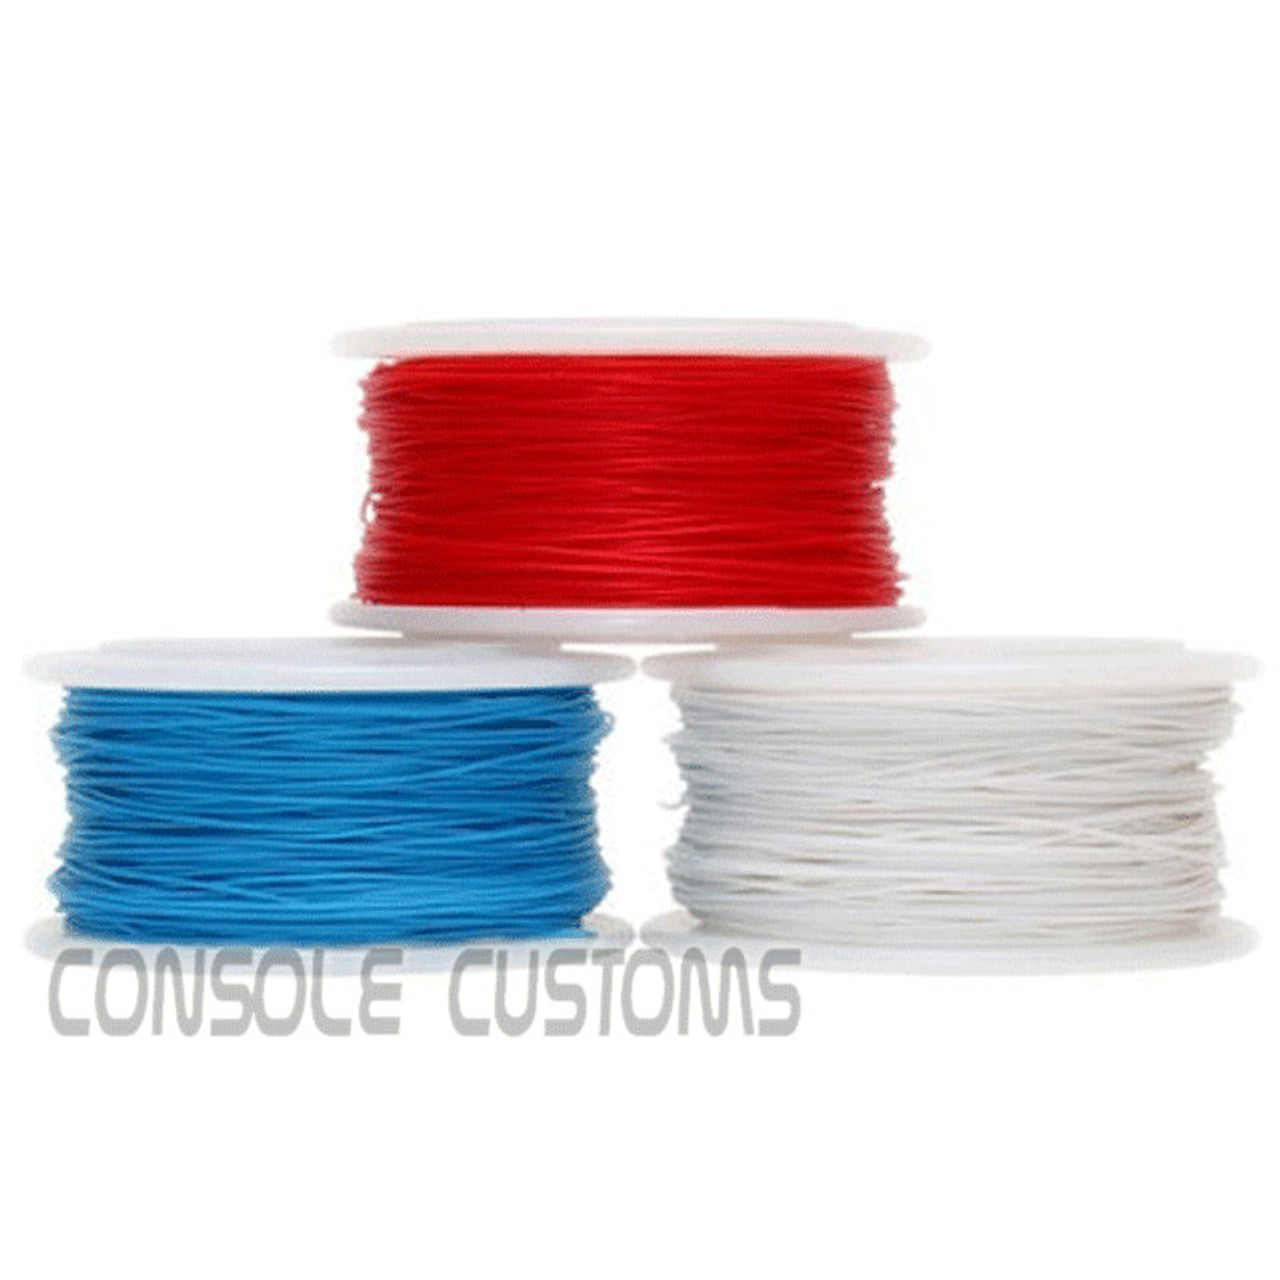 30ga kynar wire - Red, white, Blue, Green, Yellow